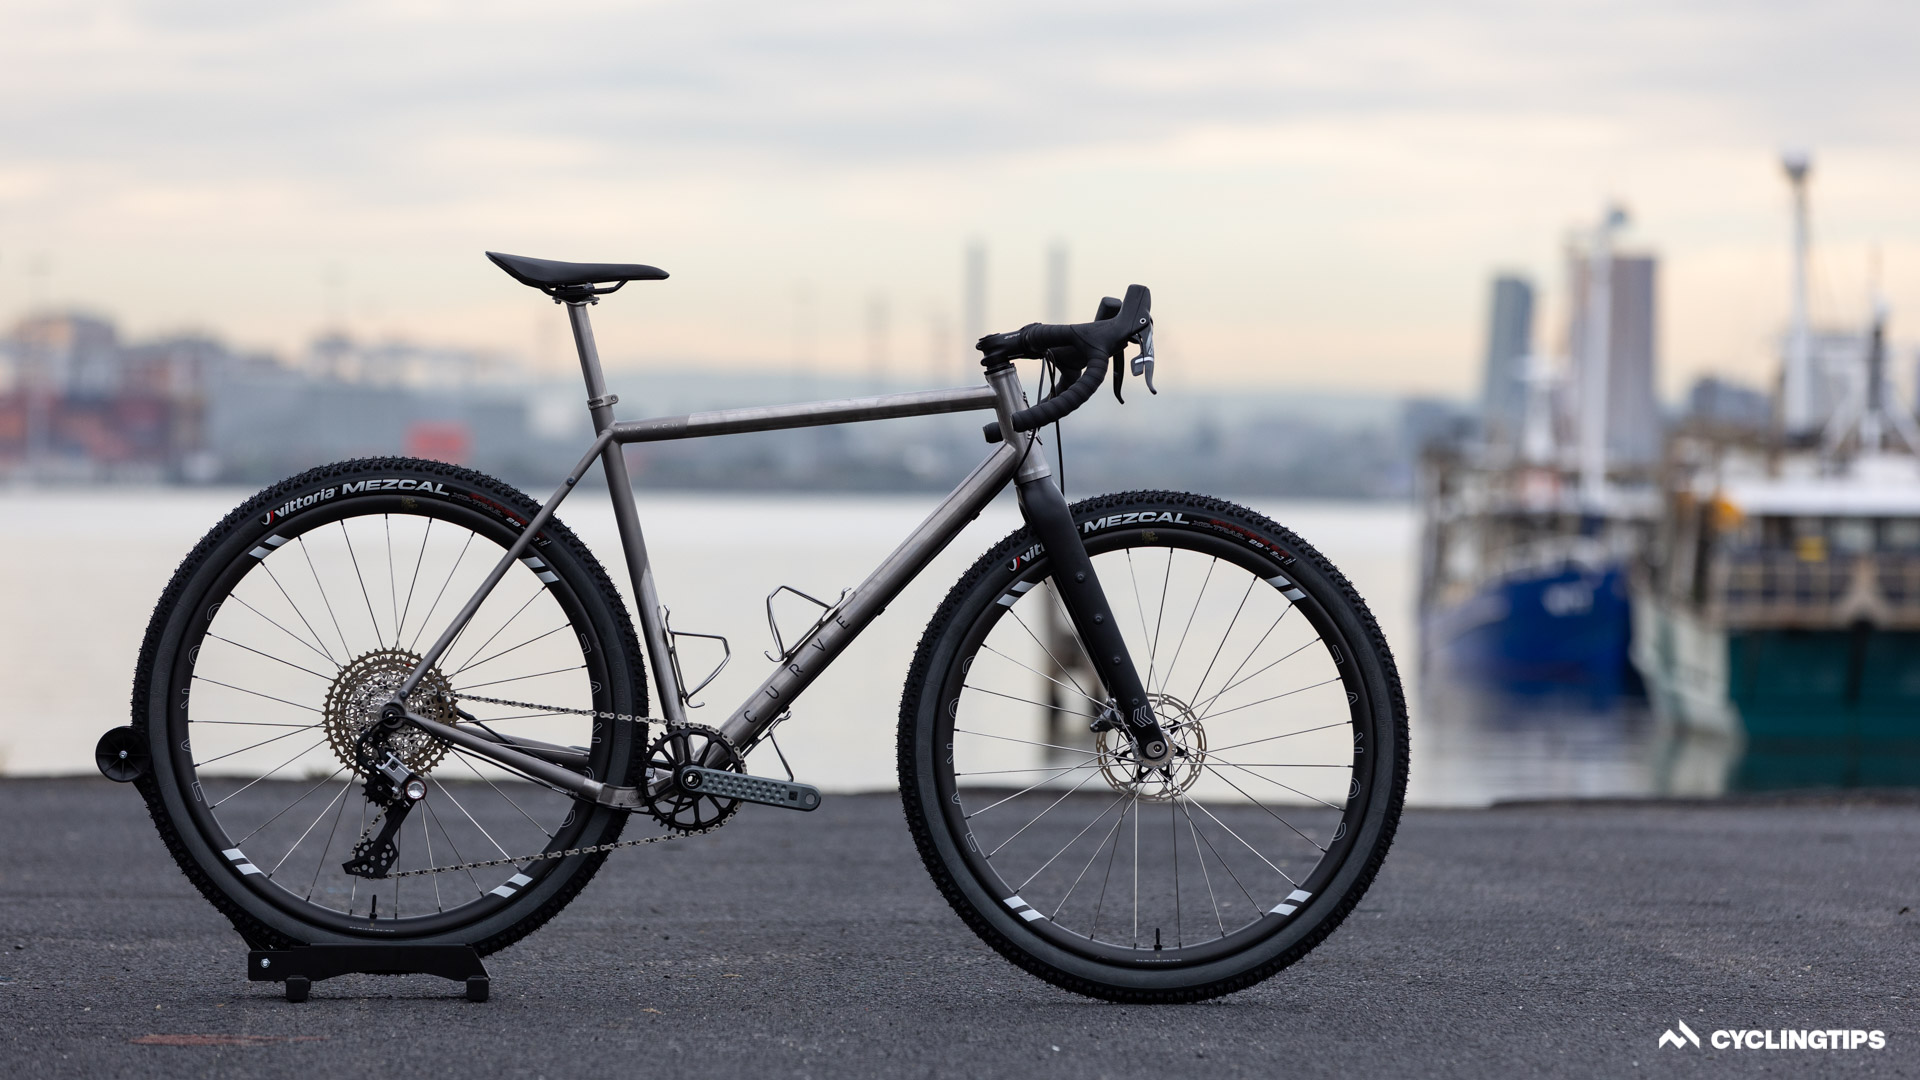 Curve Cycling's new Big Kev has room for even more rubber